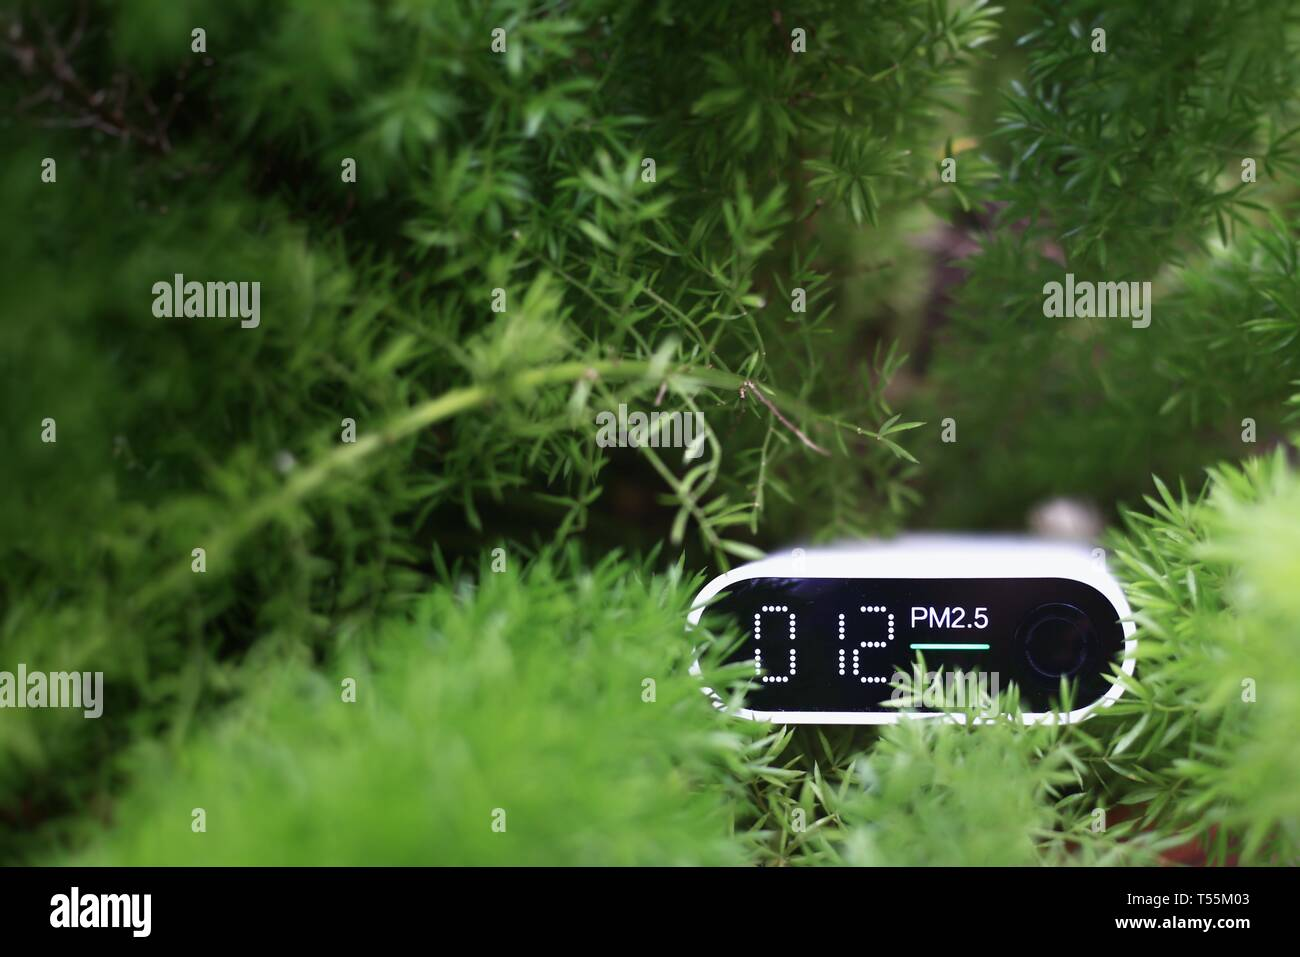 measuring outdoors air quality. particulate matter 2.5 (pm.2.5) sensor in a bush. harmful small dust detector indicated healthy acceptable air quality Stock Photo